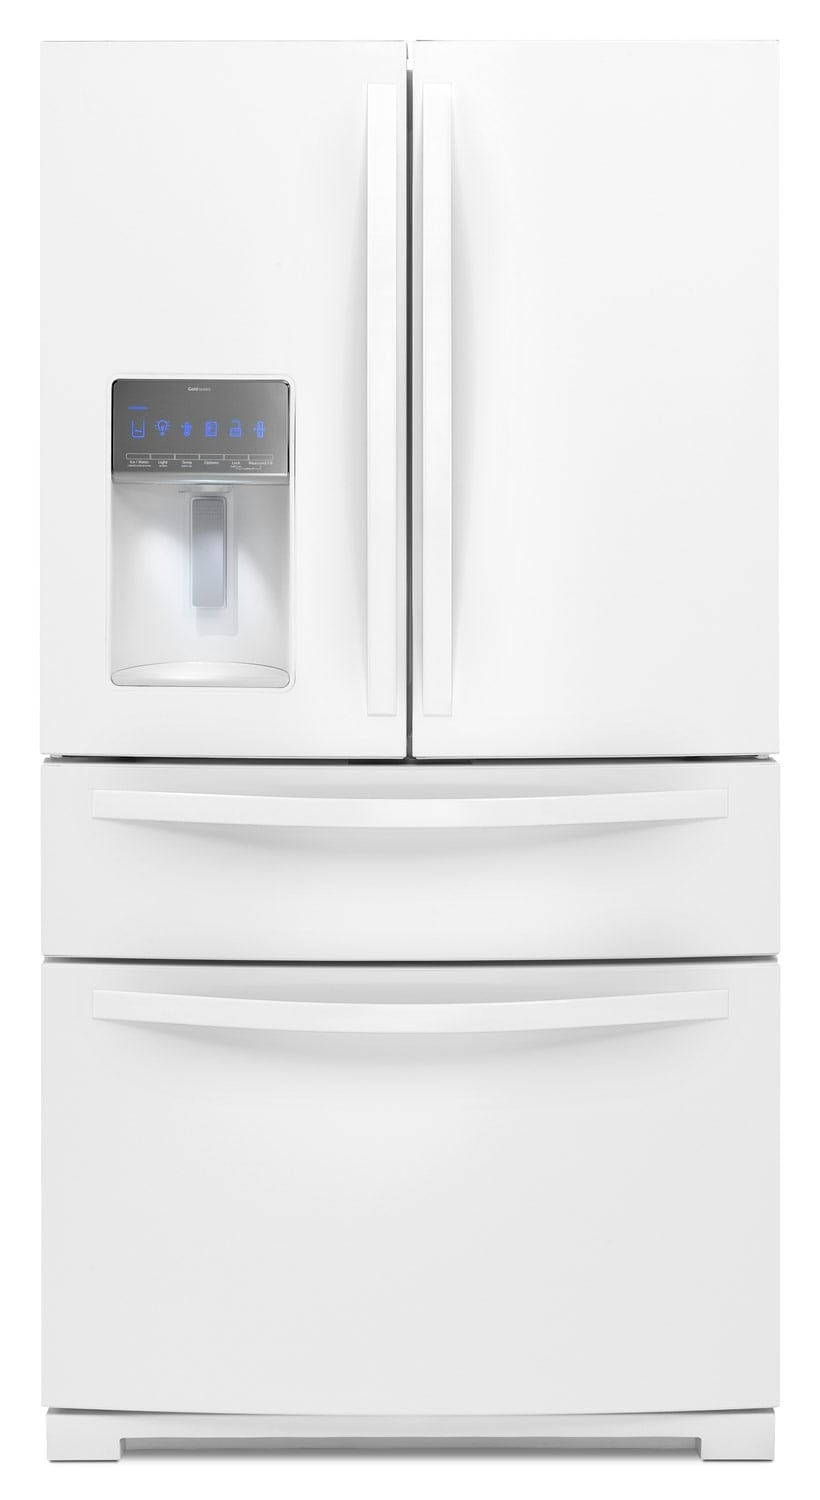 Refrigerators and Freezers - Whirlpool White French Door Refrigerator (26.2 Cu. Ft.) - WRX988SIBW